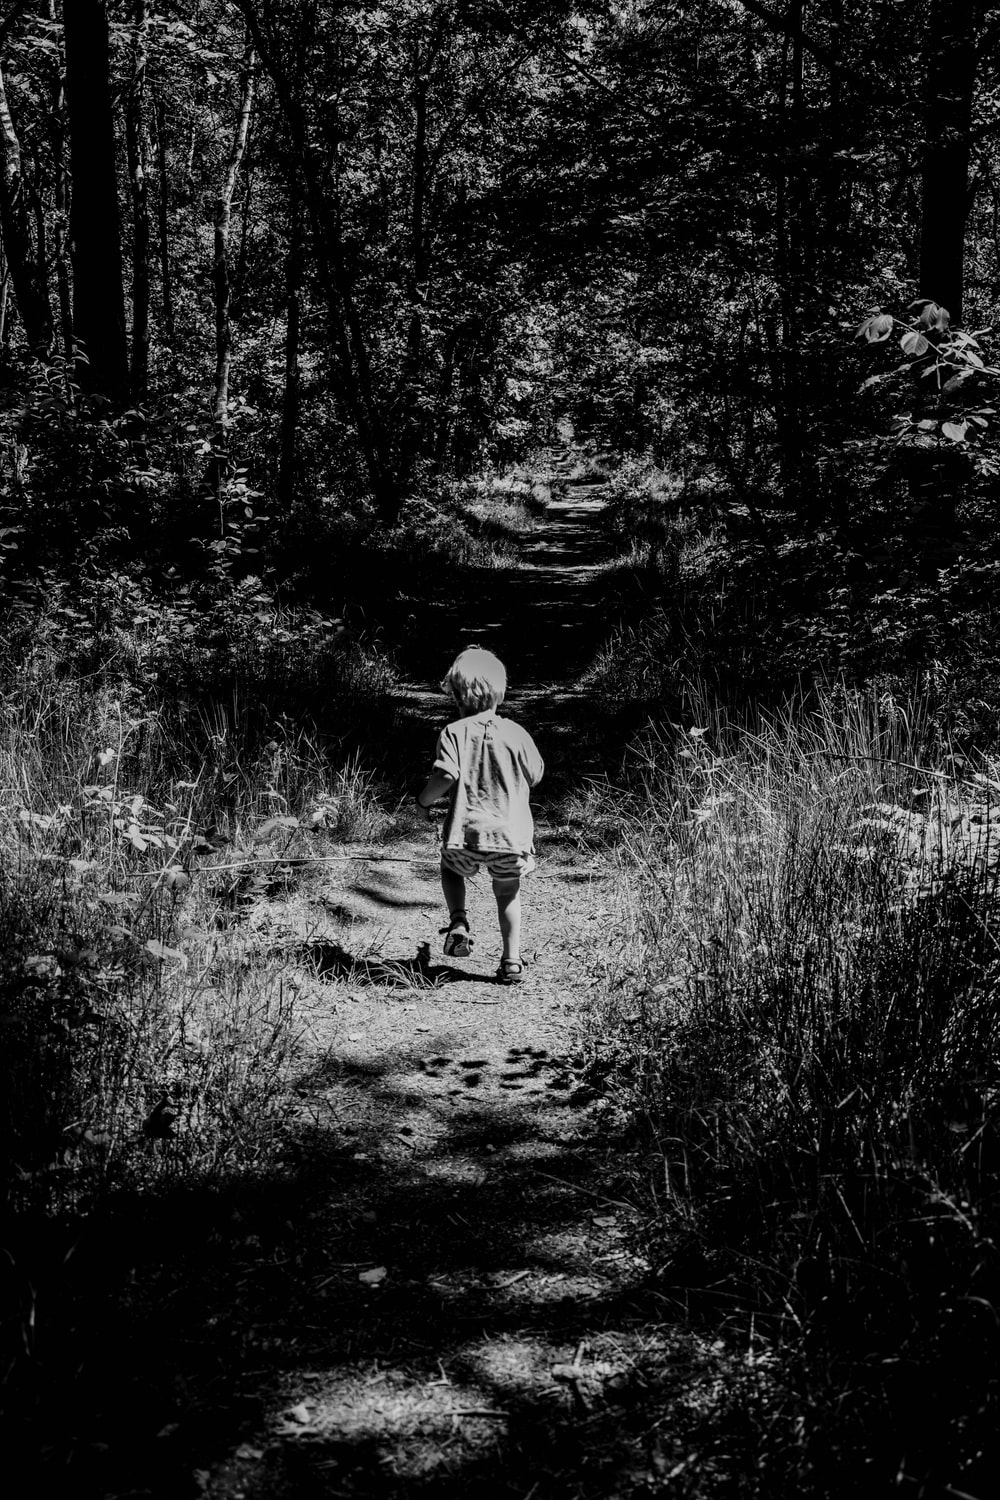 grayscale photo of child walking on forest